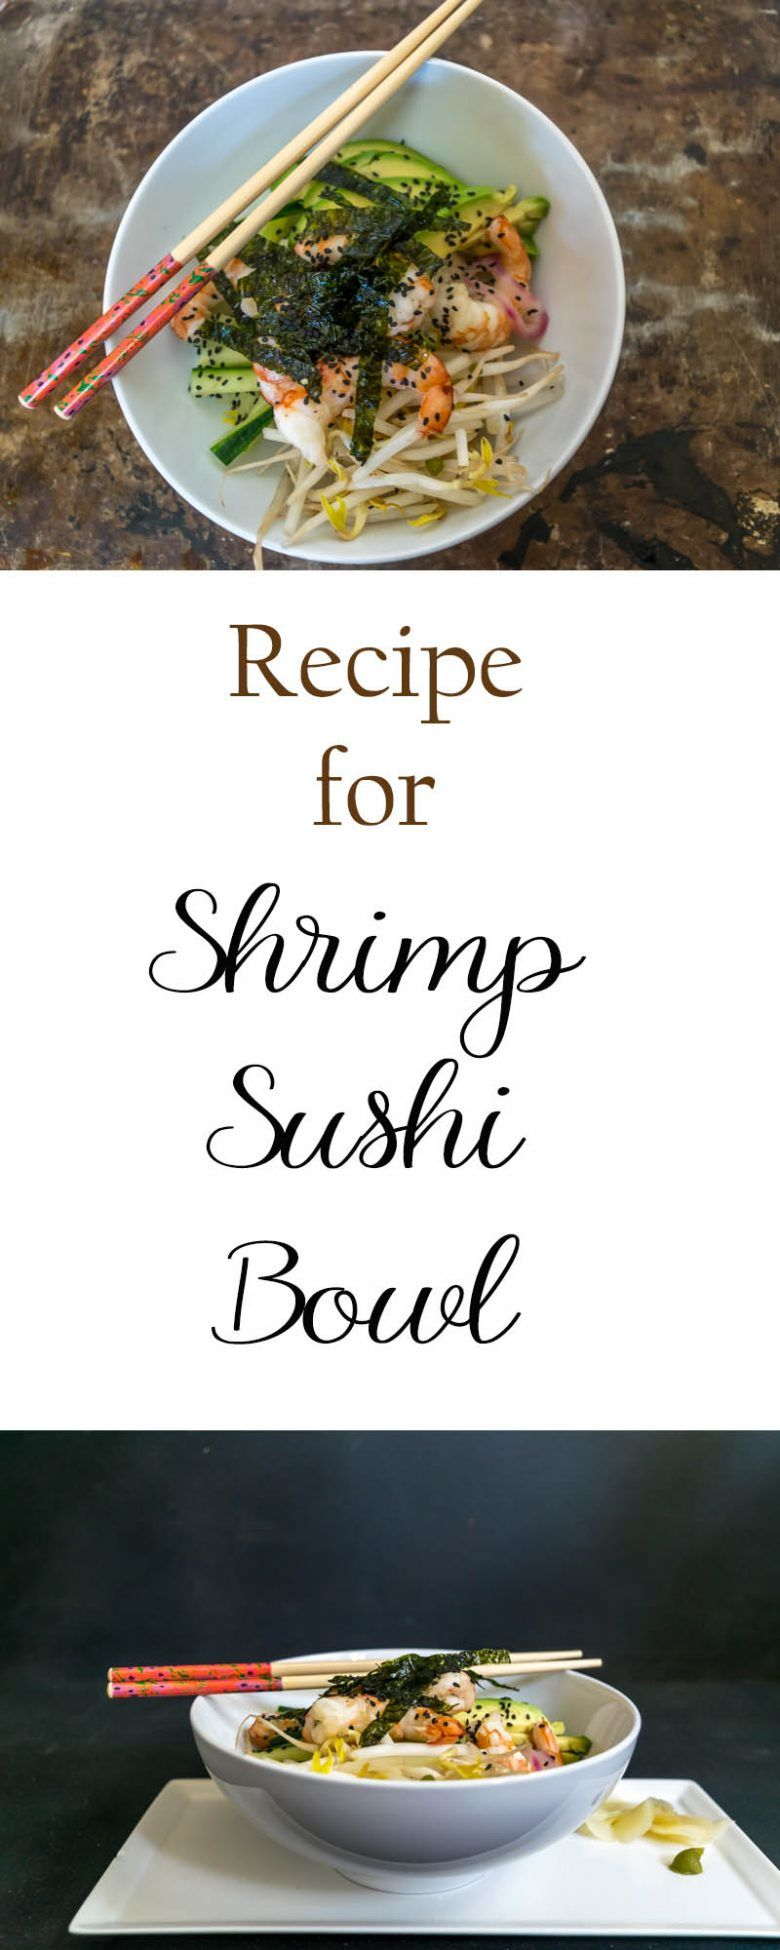 A very easy dinner recipe for a healthy and light, gluten-free Shrimp Sushi Bowl that can be customized for each taste. Delicious Asian-marinated shrimp make this recipe outstanding.